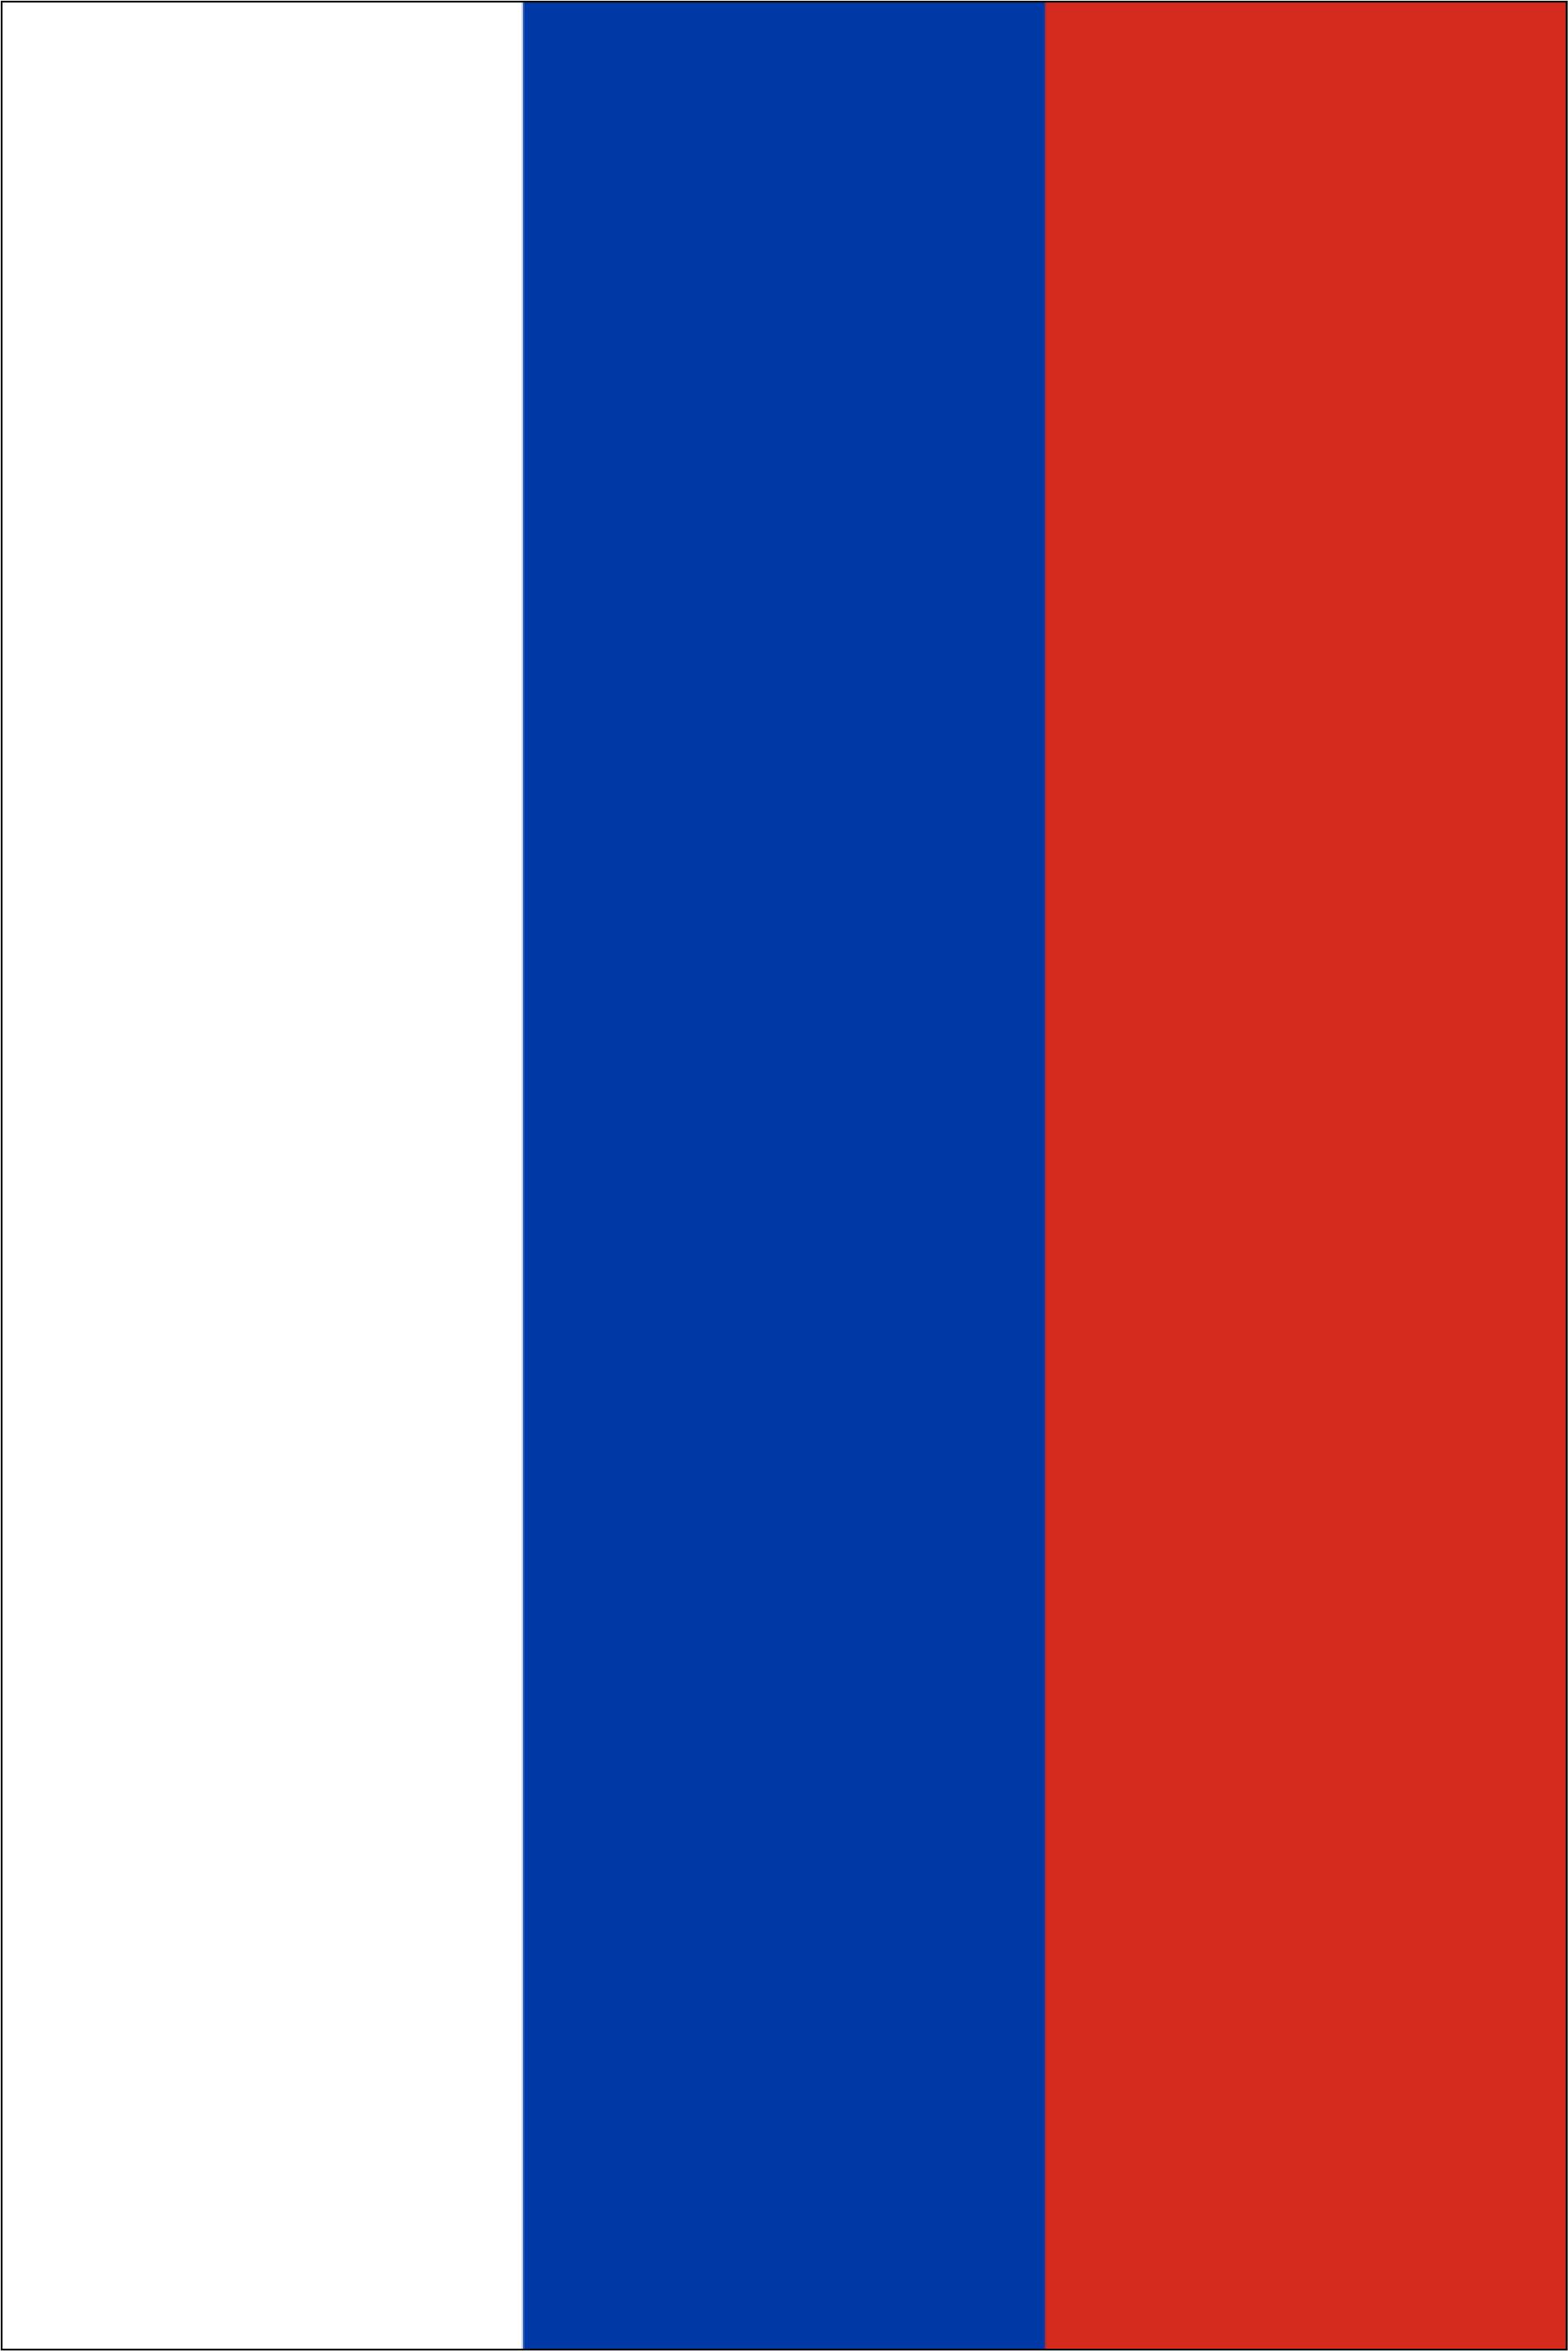 Download Printable Russia Flag Template Main Image Coquelicot Png